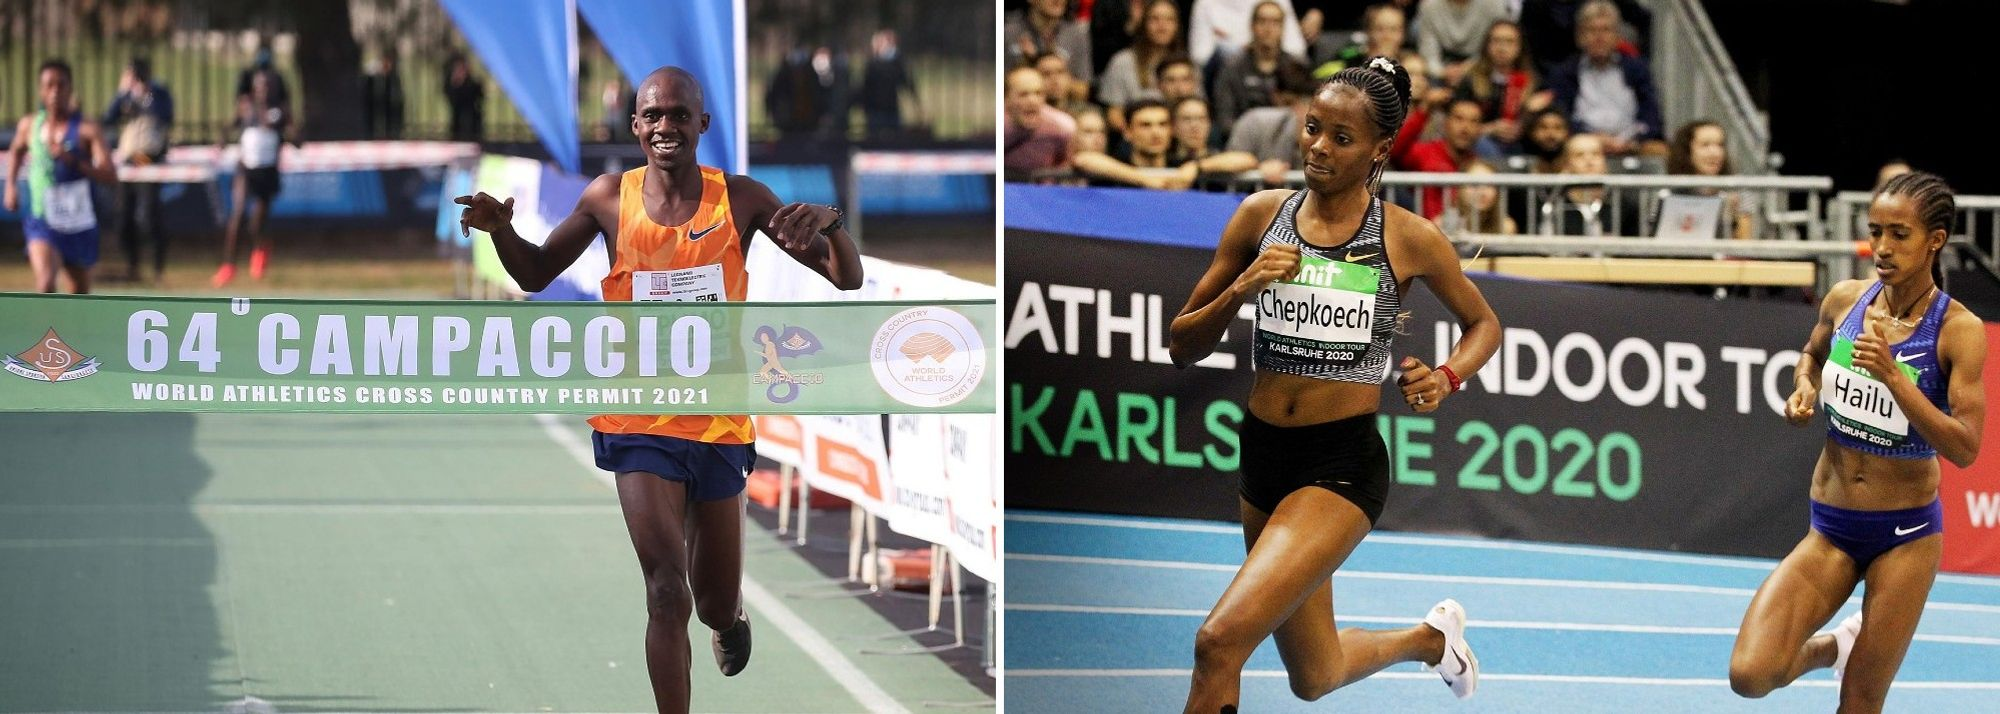 The first Gold standard meeting of the new World Athletics Cross Country Tour takes place this weekend.